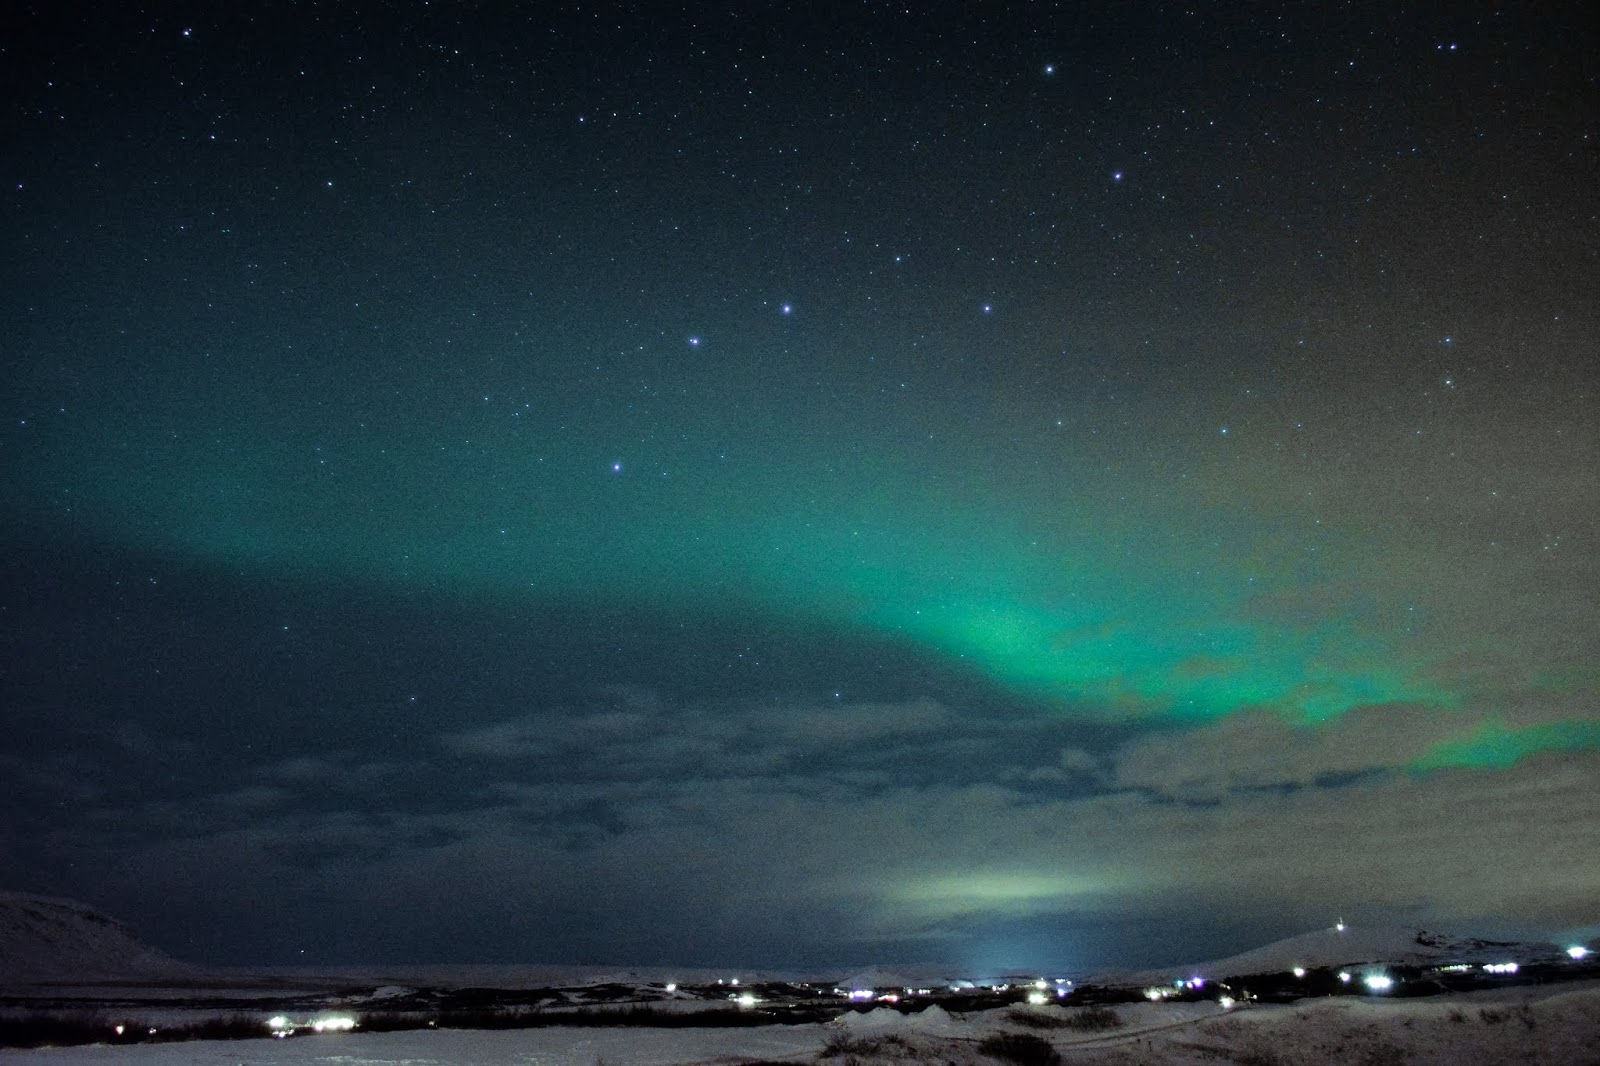 Iceland | How to photograph Northern Lights